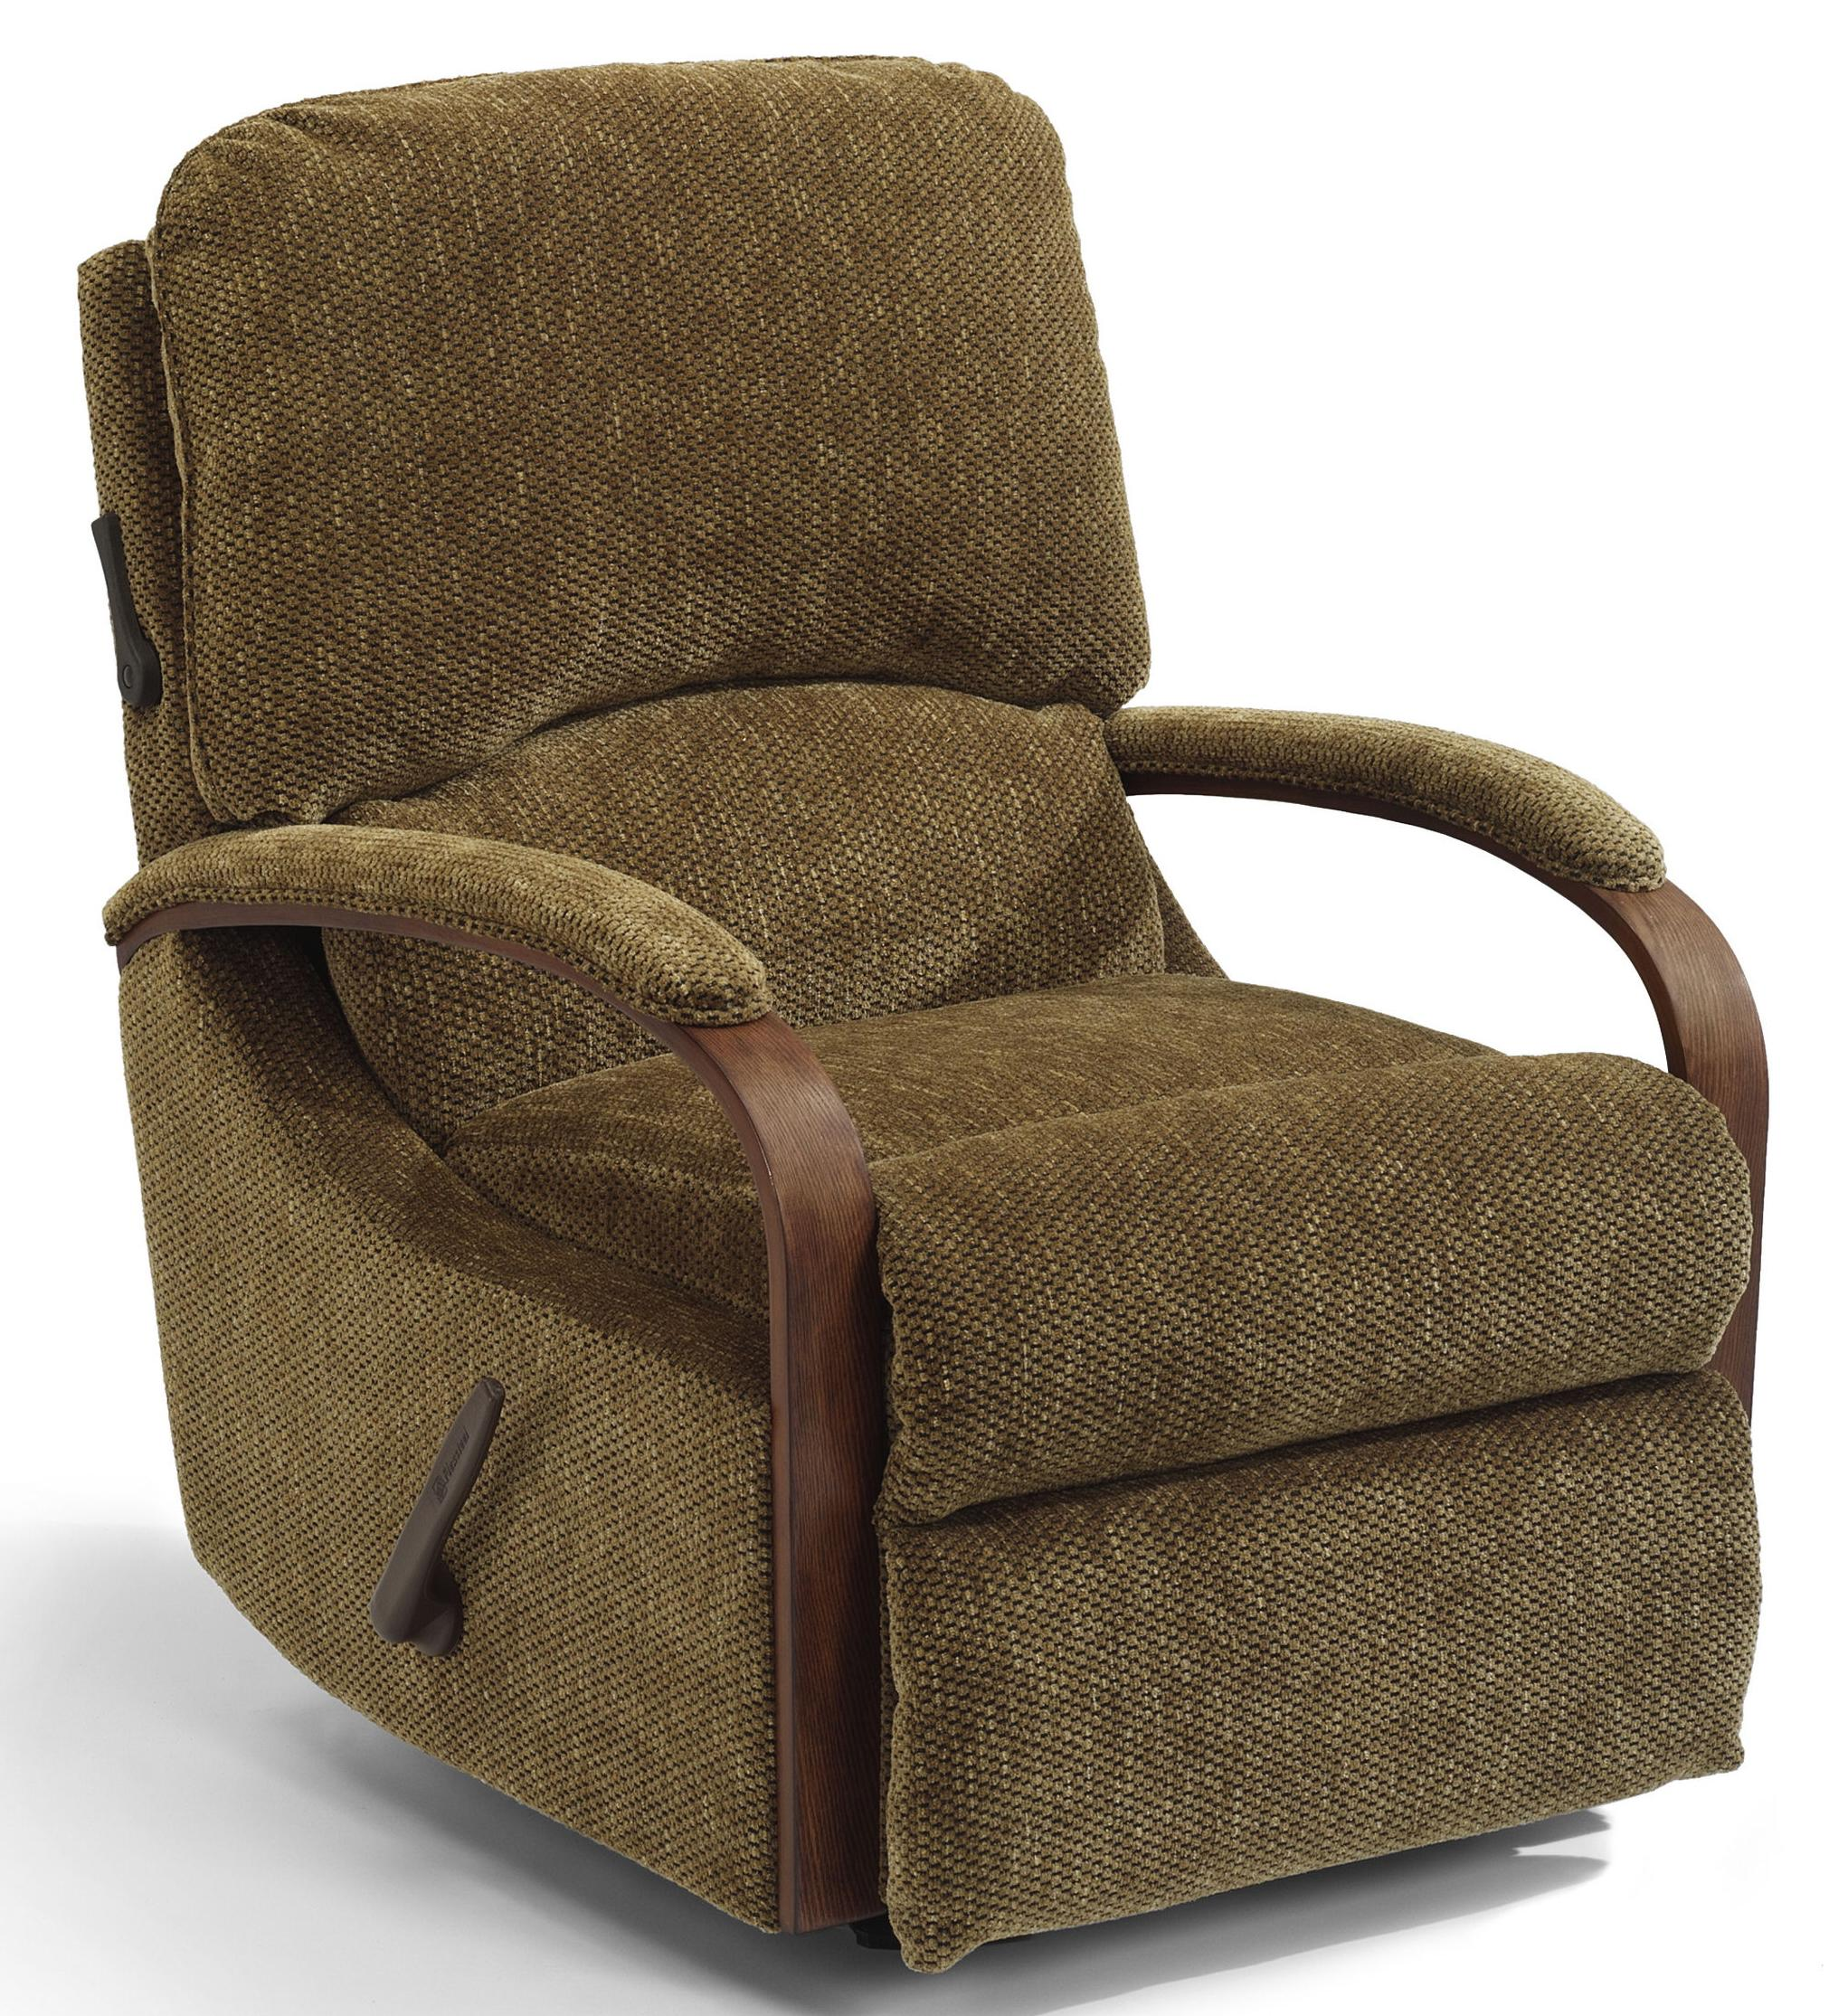 Woodlawn Swivel Glider Recliner by Flexsteel at Furniture and ApplianceMart